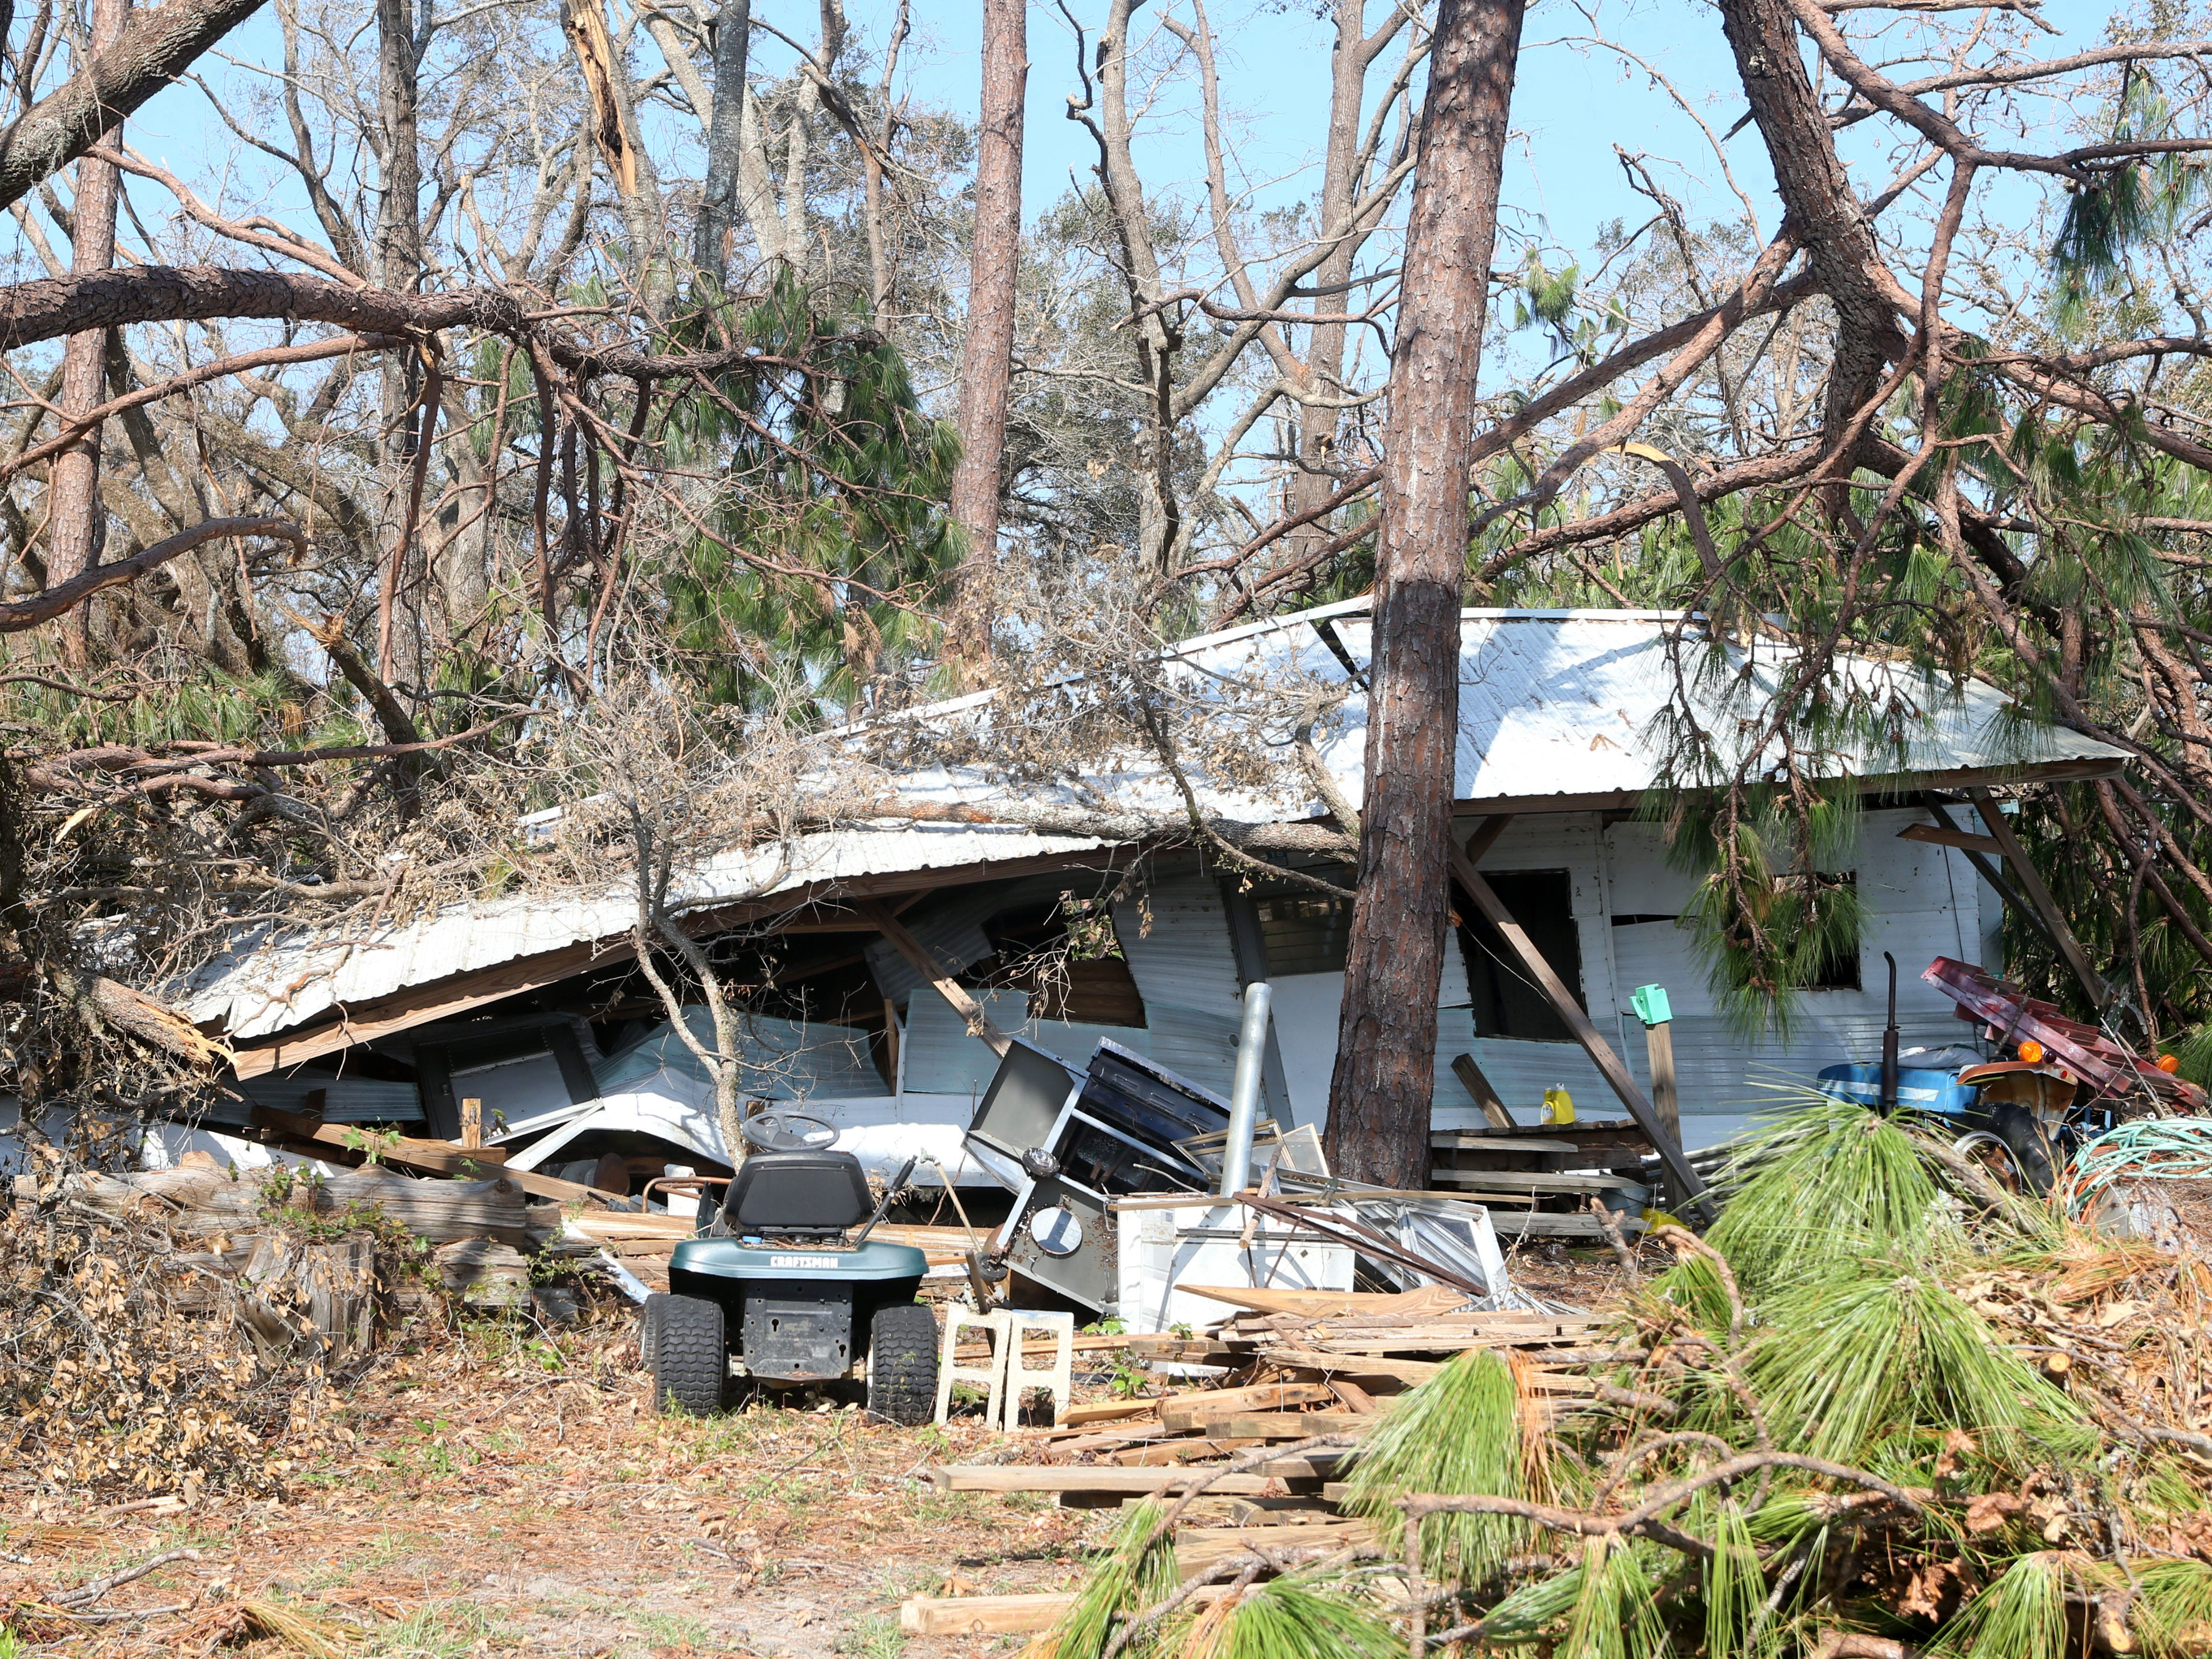 Eugene Radney's pole barn after Hurricane Michael. Eugene is the grandfather of Sarah Radney, an 11 year old girl who died during Hurricane Michael in Donalsonville, Ga. on Thursday, Oct. 18, 2018.